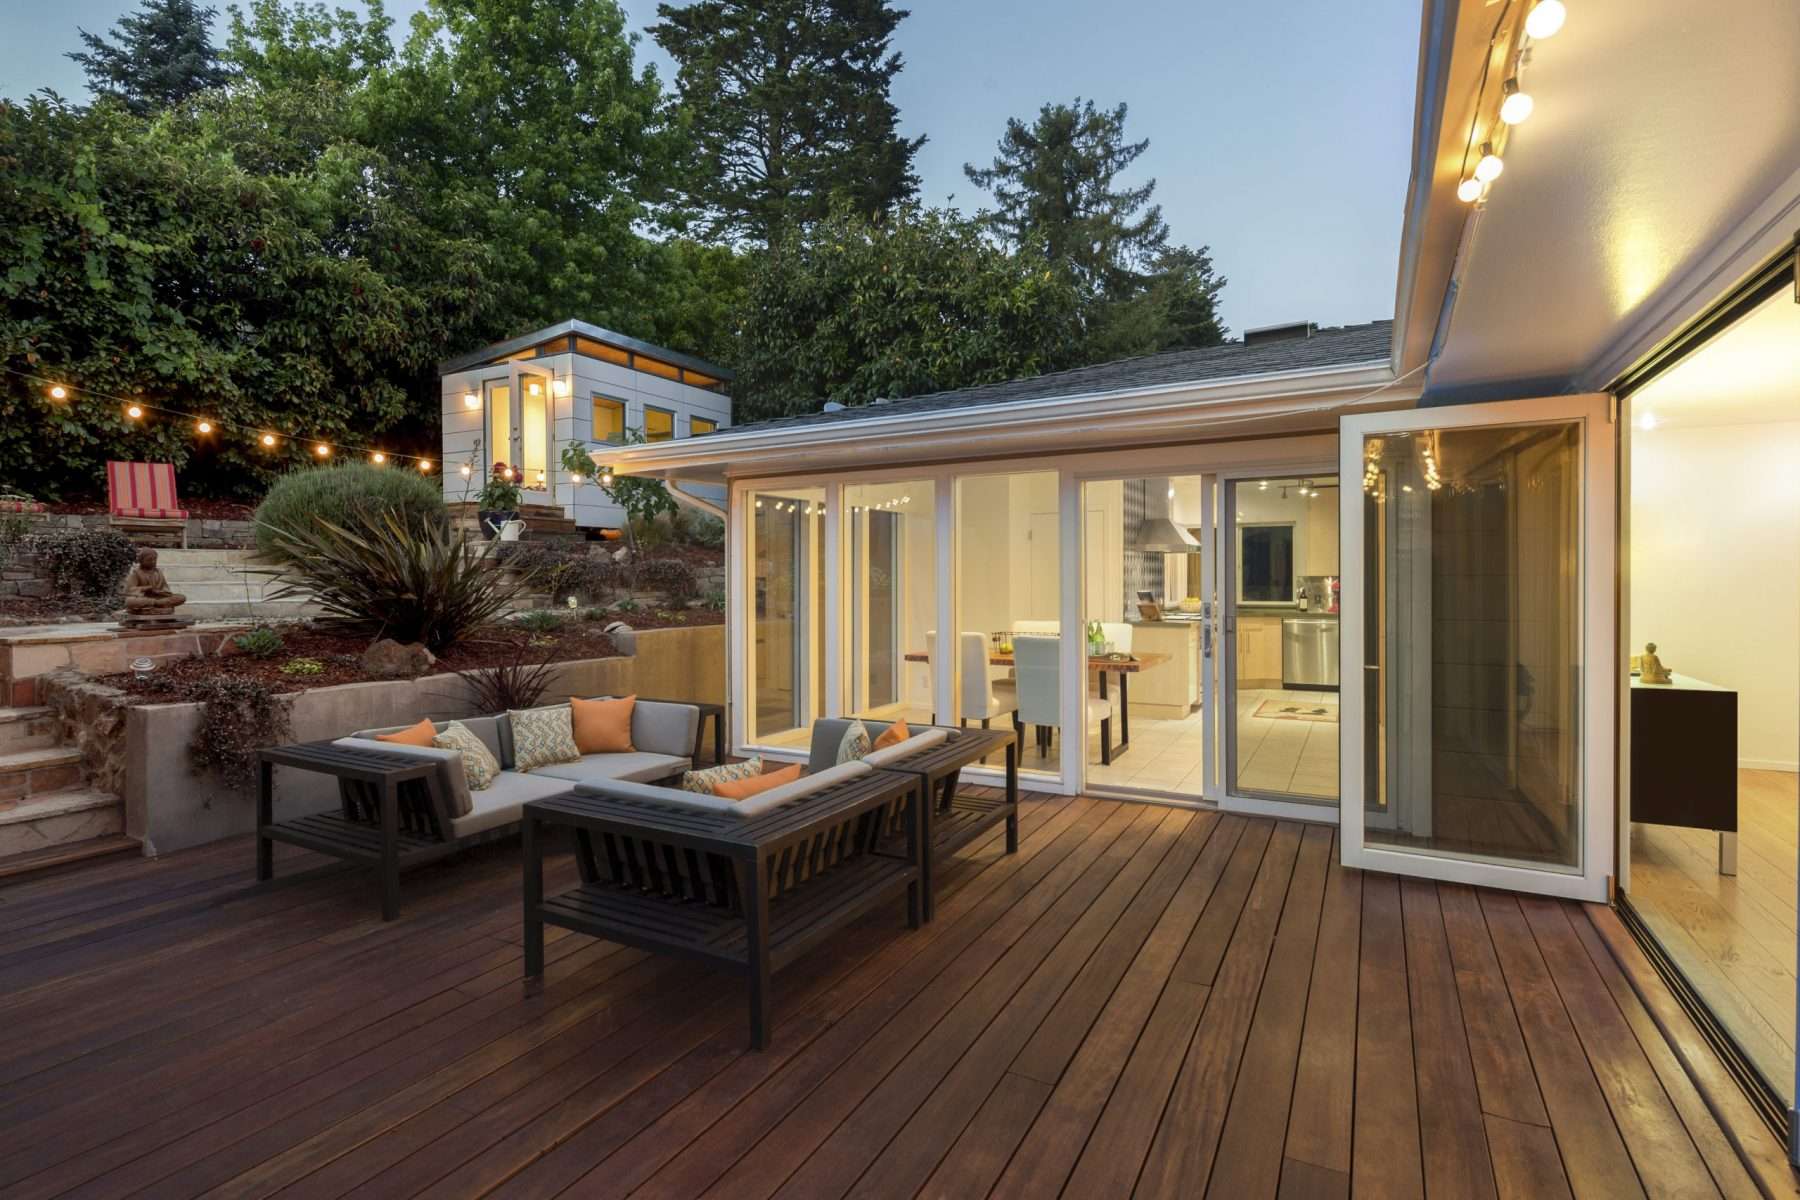 Amazing furniture patio / wooden deck at twilight.